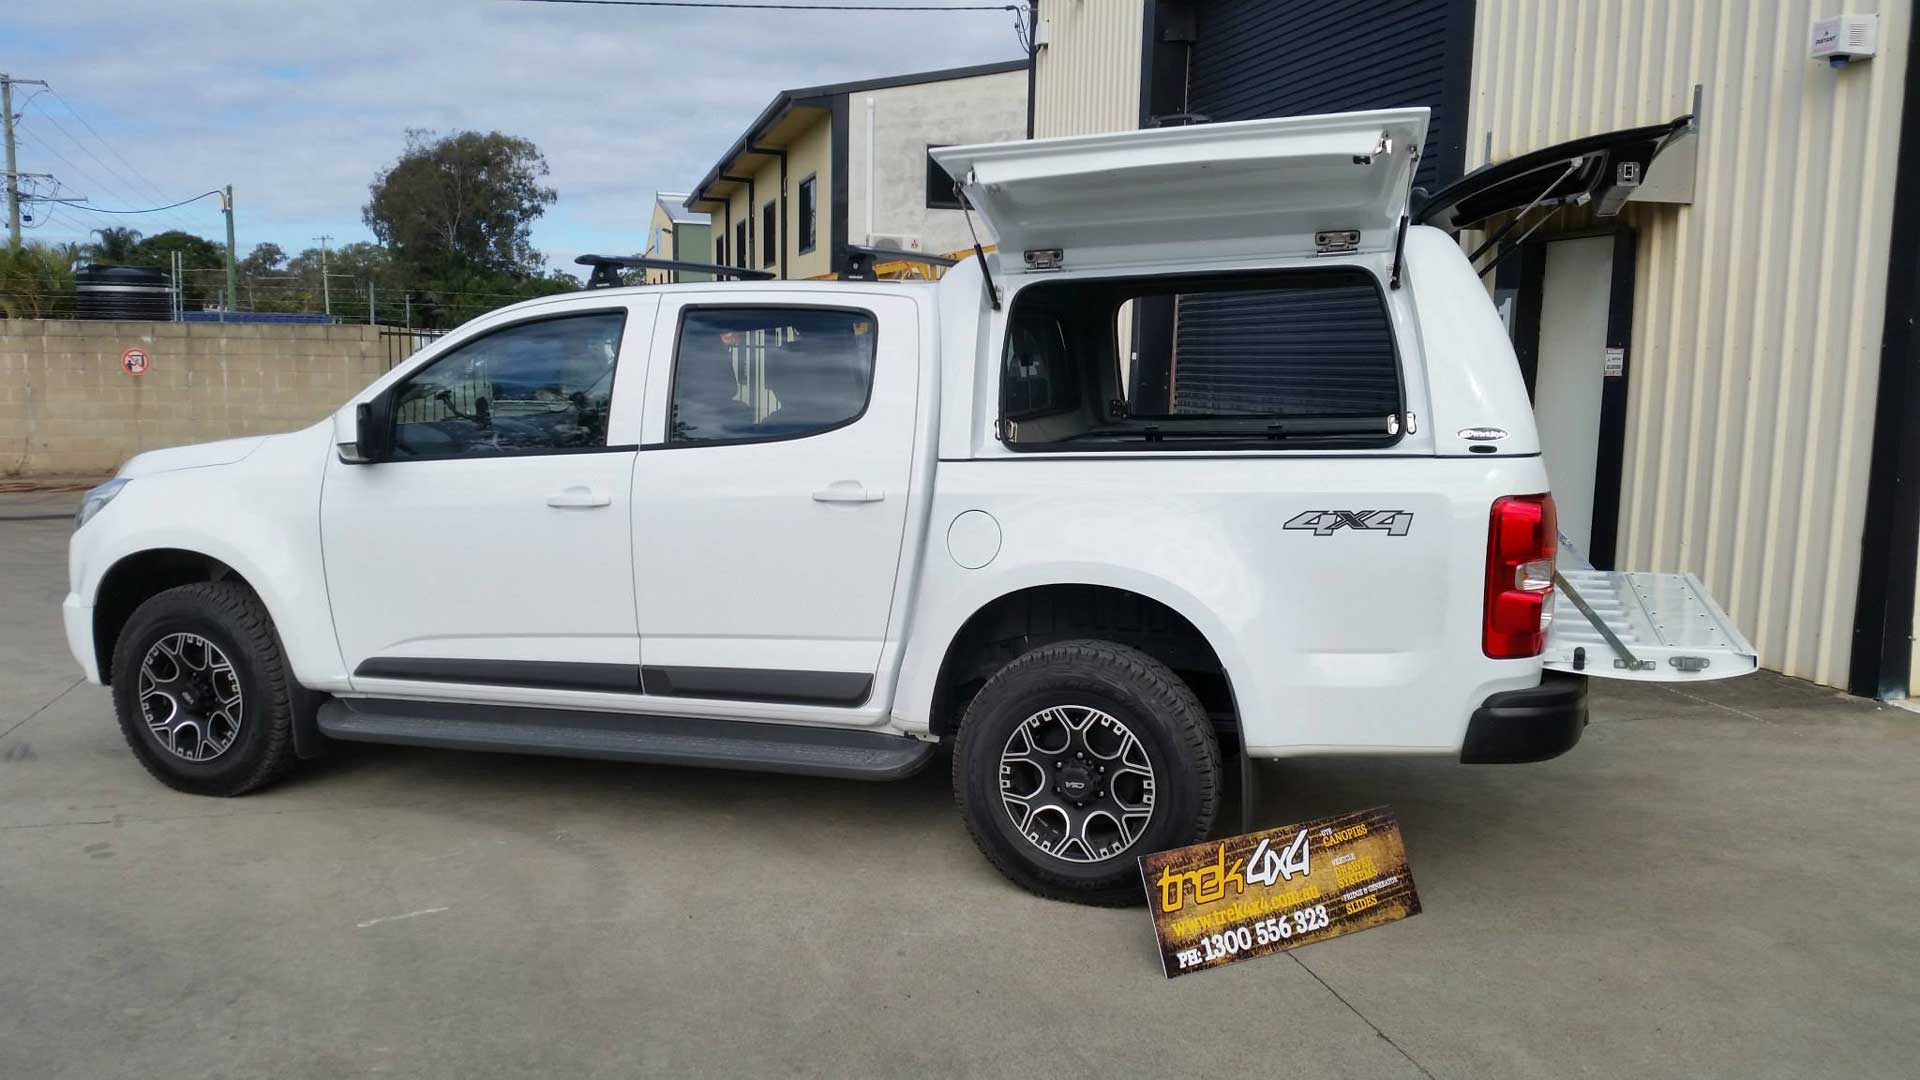 Holden Colorado RG 2012 Workstyle canopy & Holden Colorado RG 2012 + Workstyle Canopy